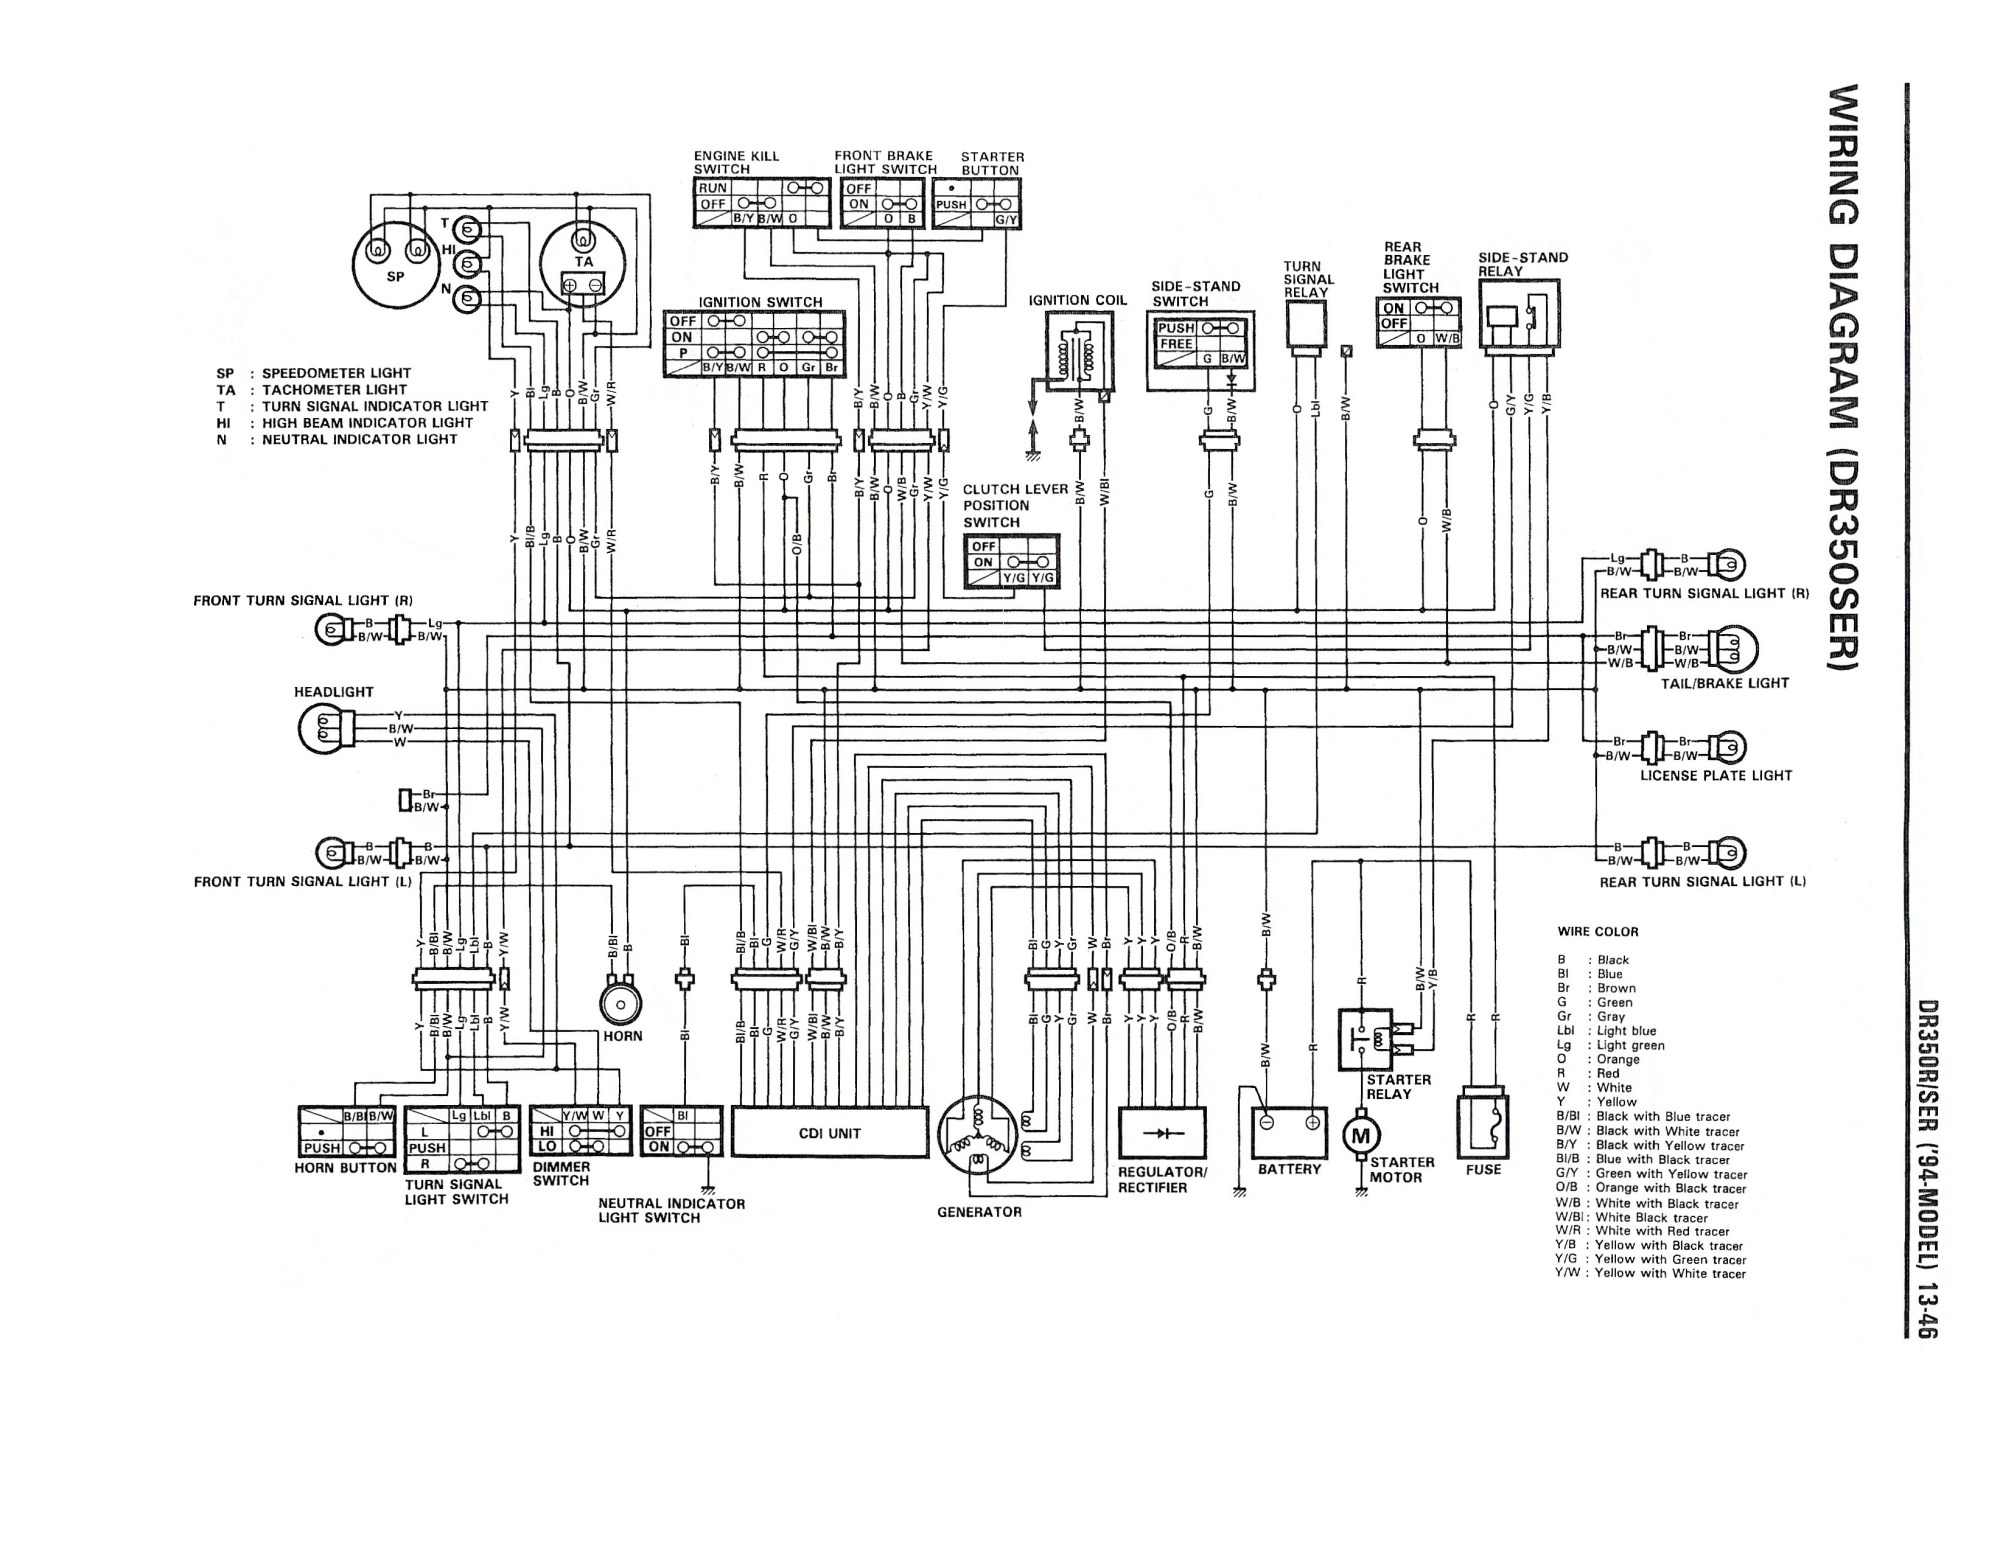 hight resolution of wiring diagram for the dr350 se 1994 and later models suzuki zx7r wiring